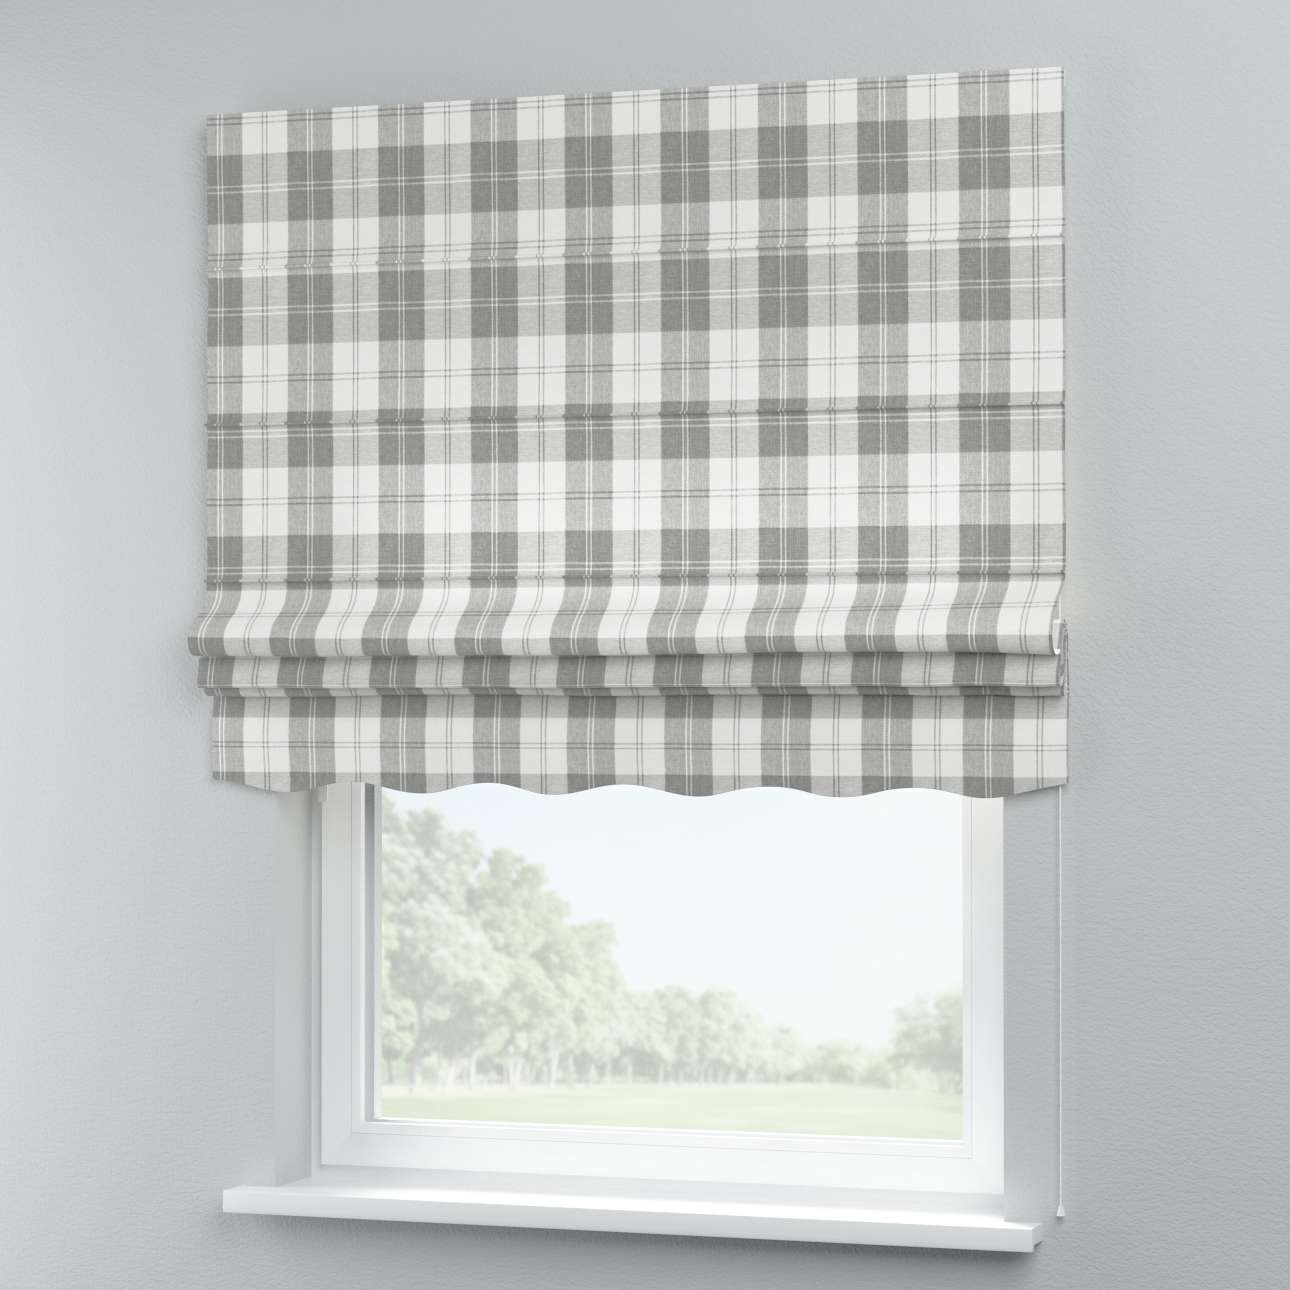 Florence roman blind  80 x 170 cm (31.5 x 67 inch) in collection Edinburgh, fabric: 115-79